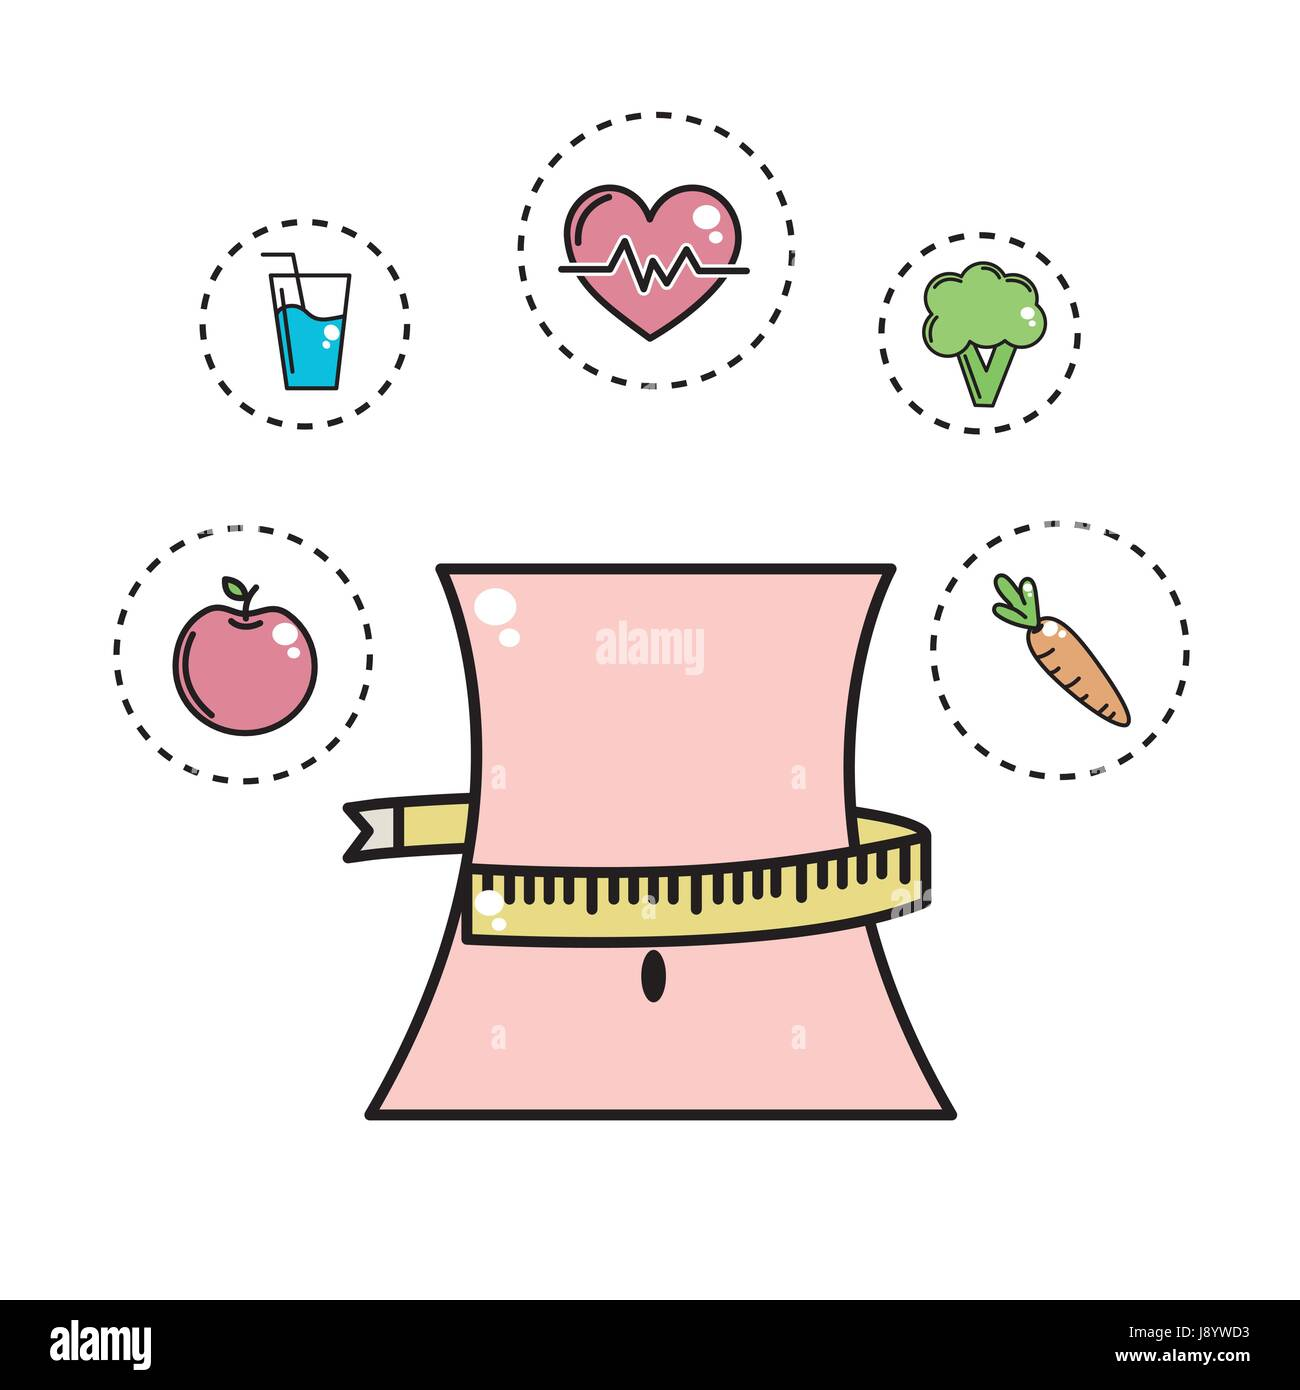 weist with meter and healthy tools icons - Stock Image